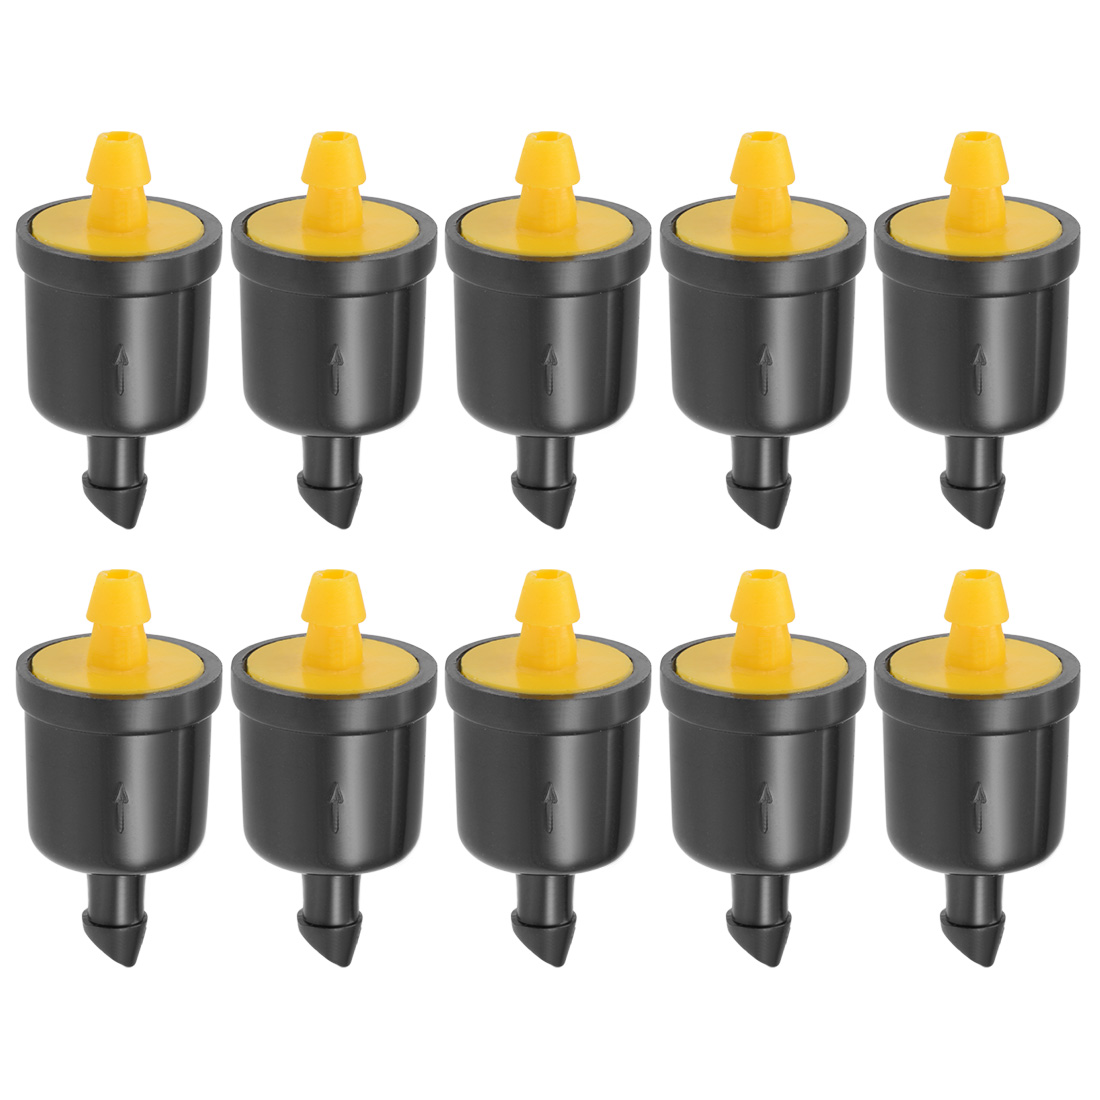 Pressure Compensating Dripper 5 GPH 20L/H Emitter Lawn Irrigation Yellow 50pcs